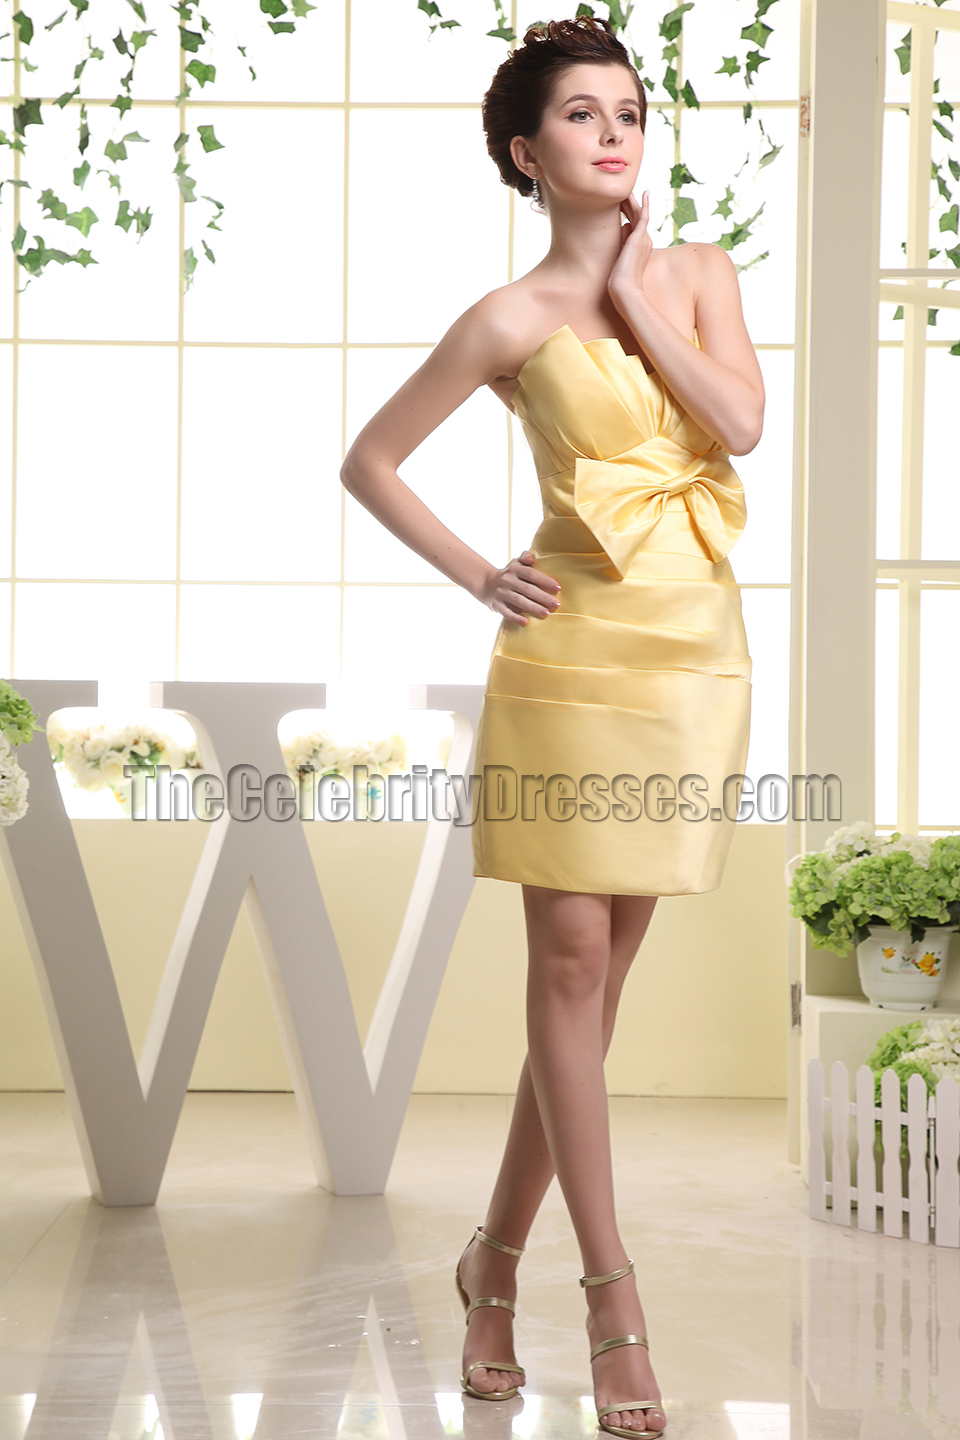 Strapless yellow short party dress homecoming bridesmaid dresses strapless yellow short party dress homecoming bridesmaid dresses thecelebritydresses ombrellifo Choice Image